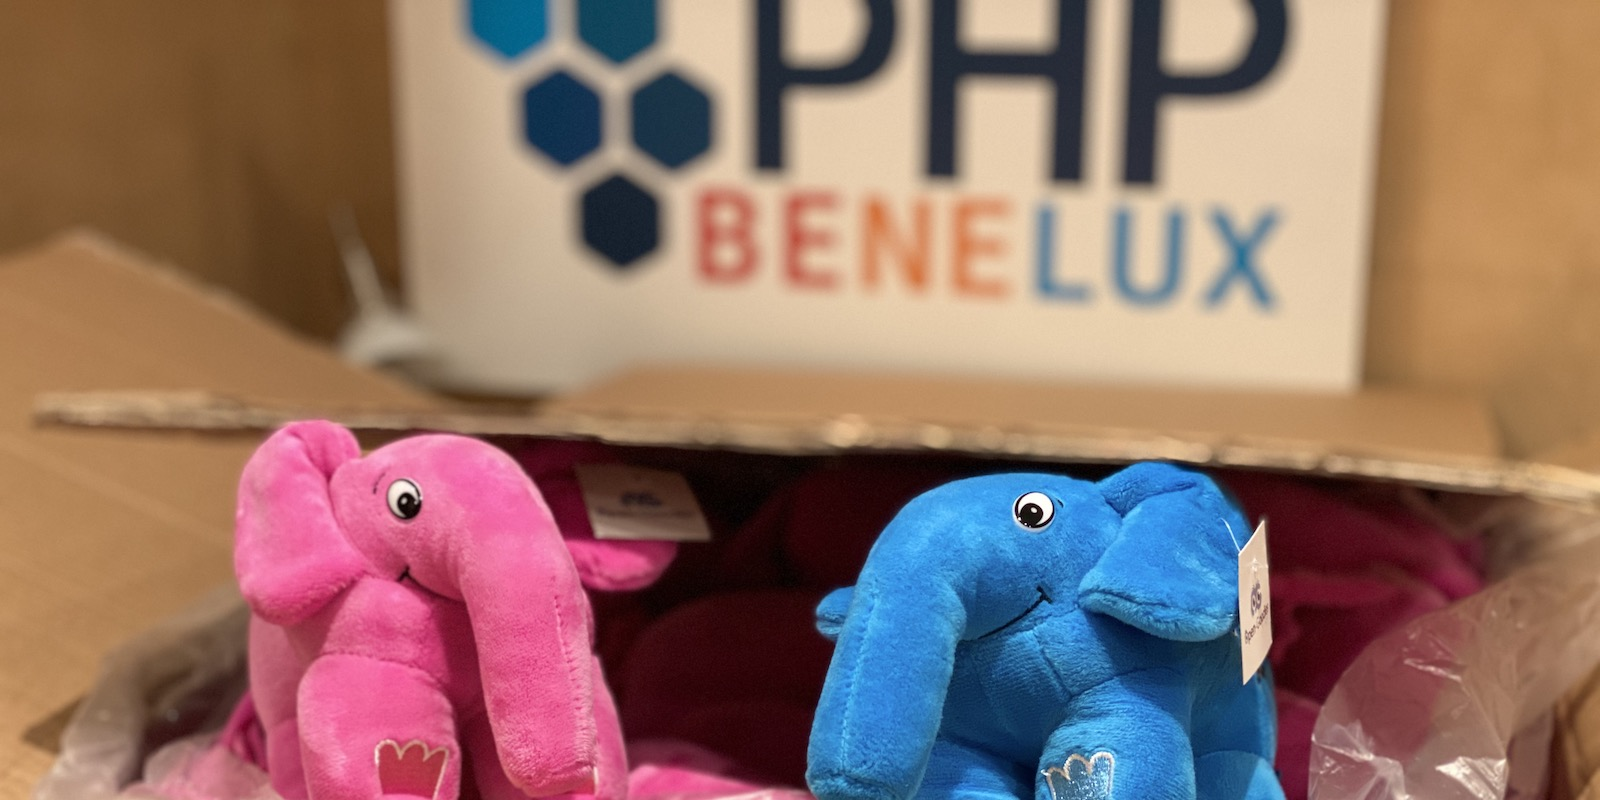 PHP mascot elephant in front of PHPBenelux sign